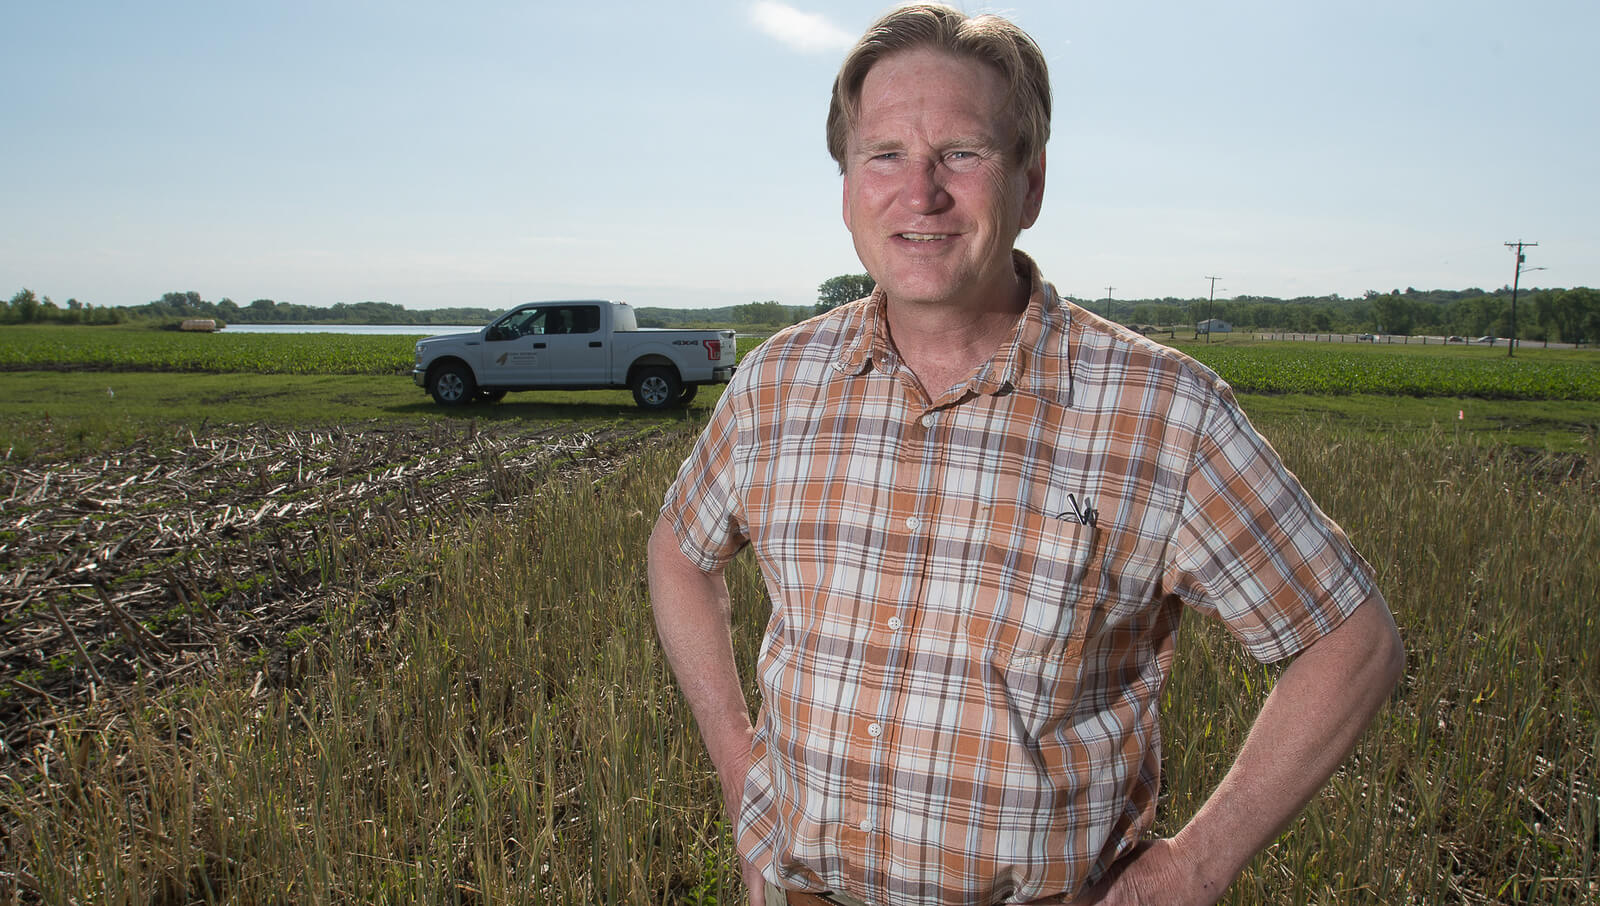 Scott Nelson poses in front of farm field with pickup i